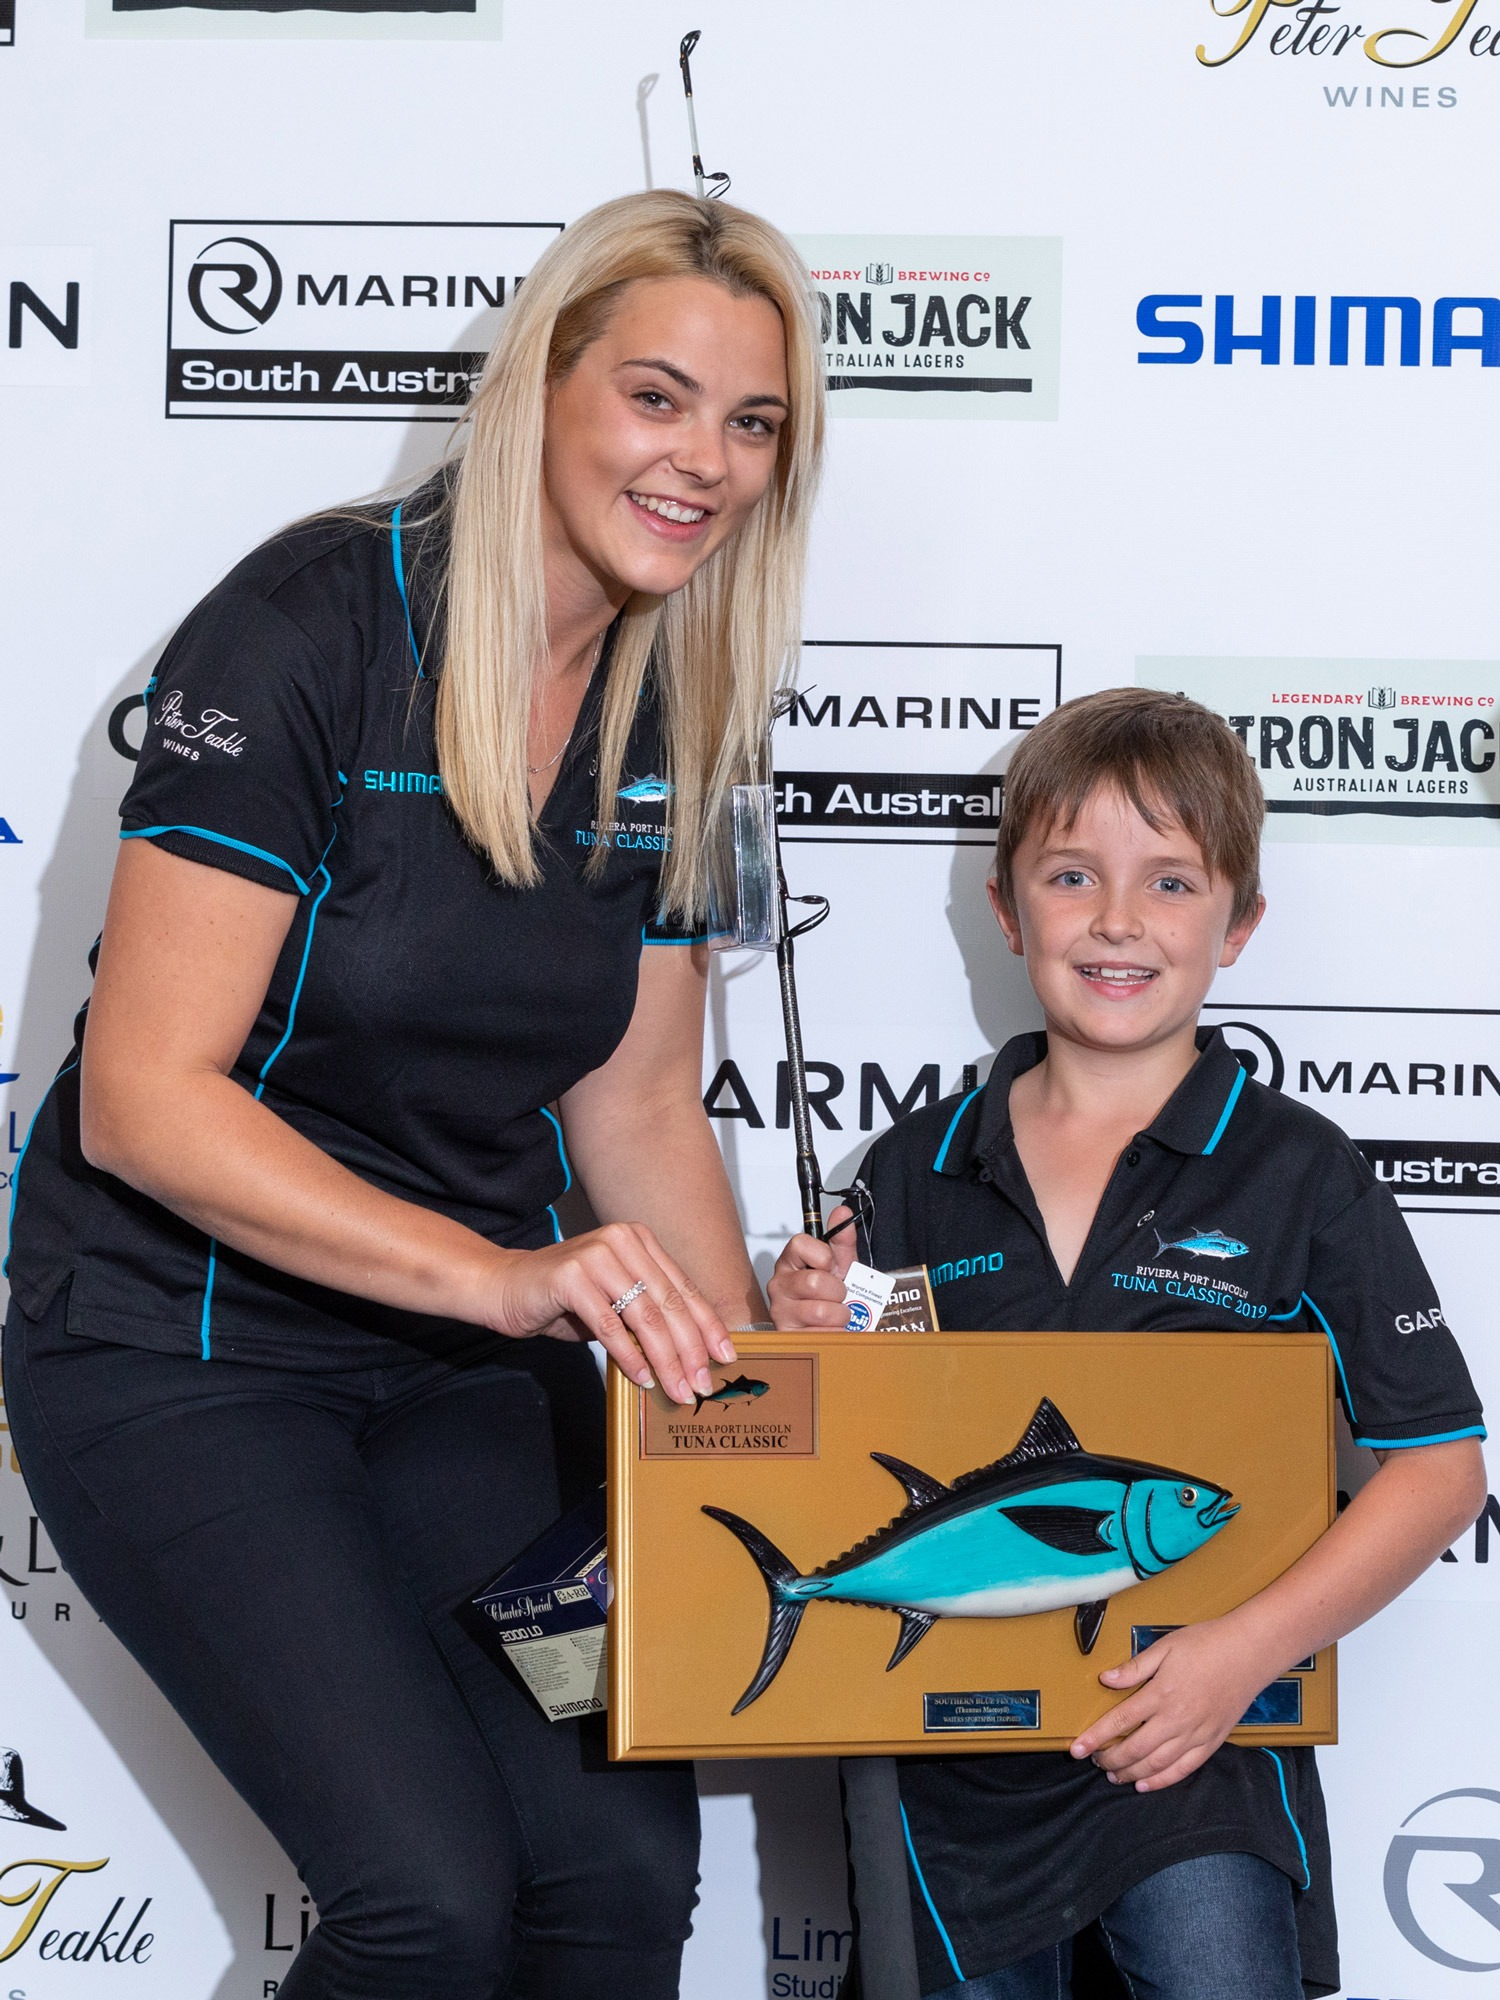 Champion smallfry angler, Harry Czabayski with Gabriella Gabbana.